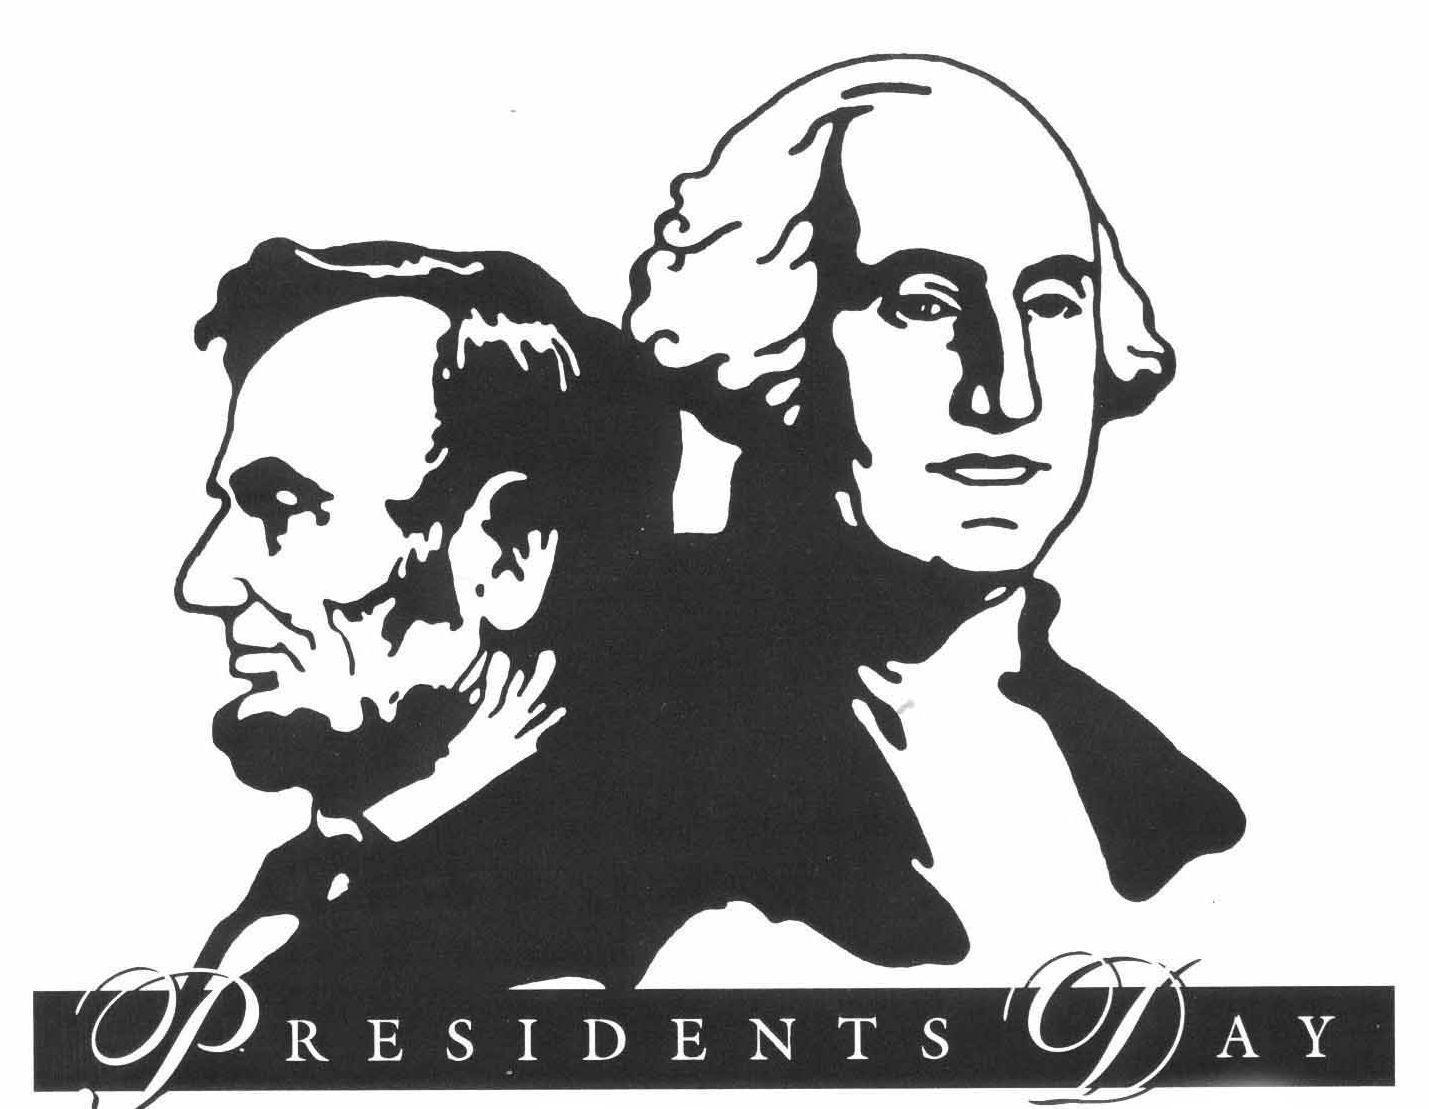 Who was the 5th president? (U.S.)